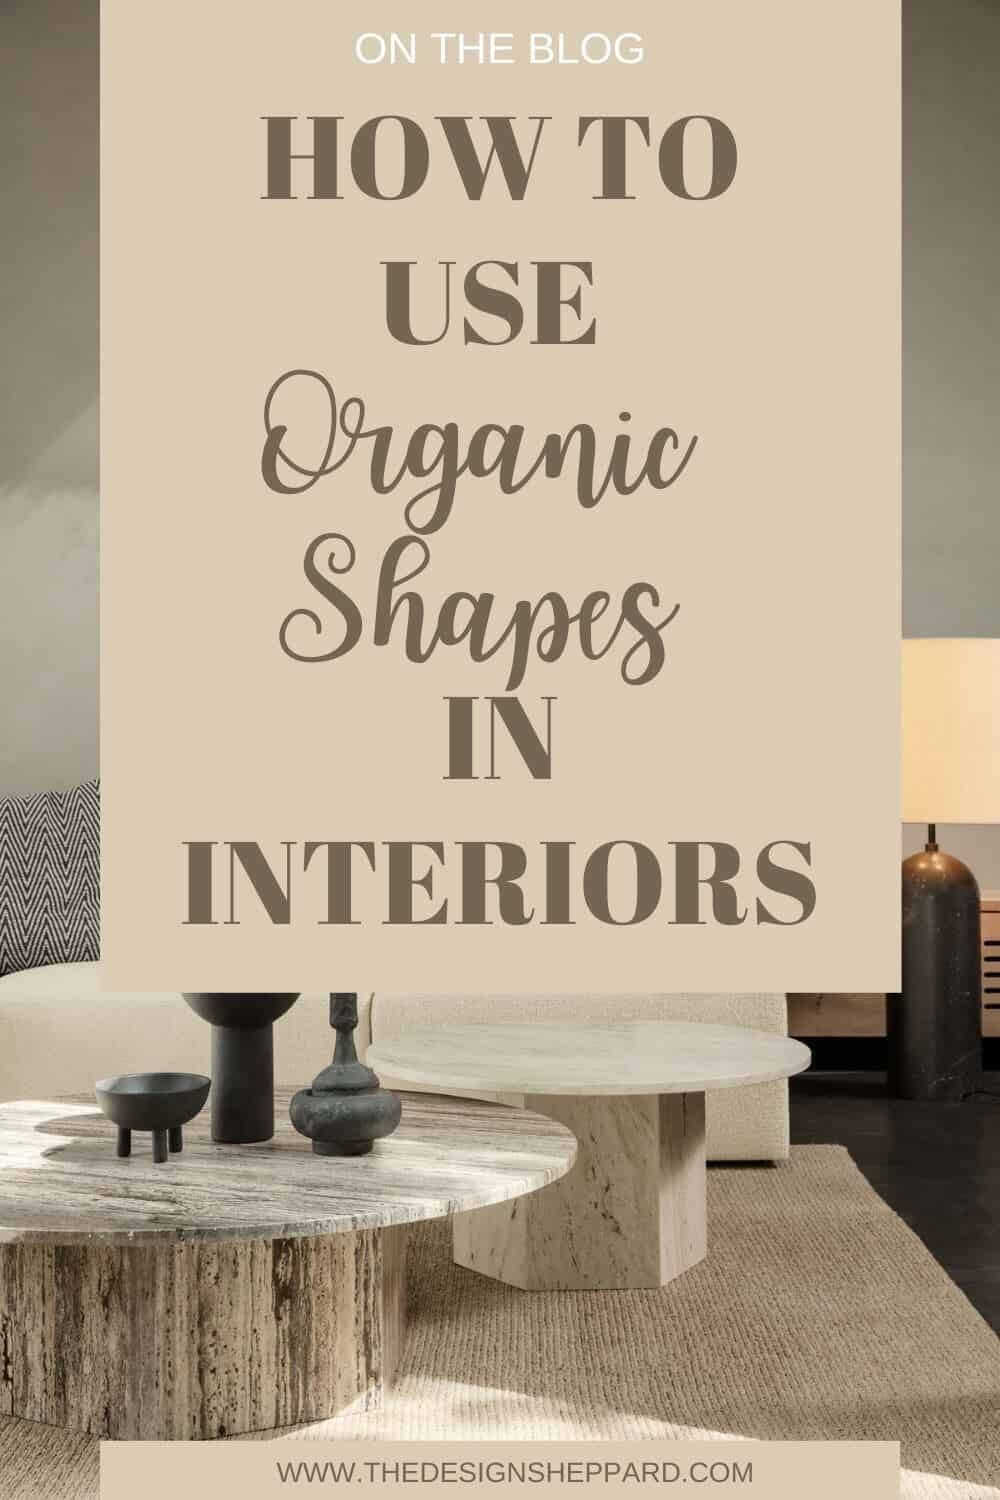 The trend for using organic shapes in interiors